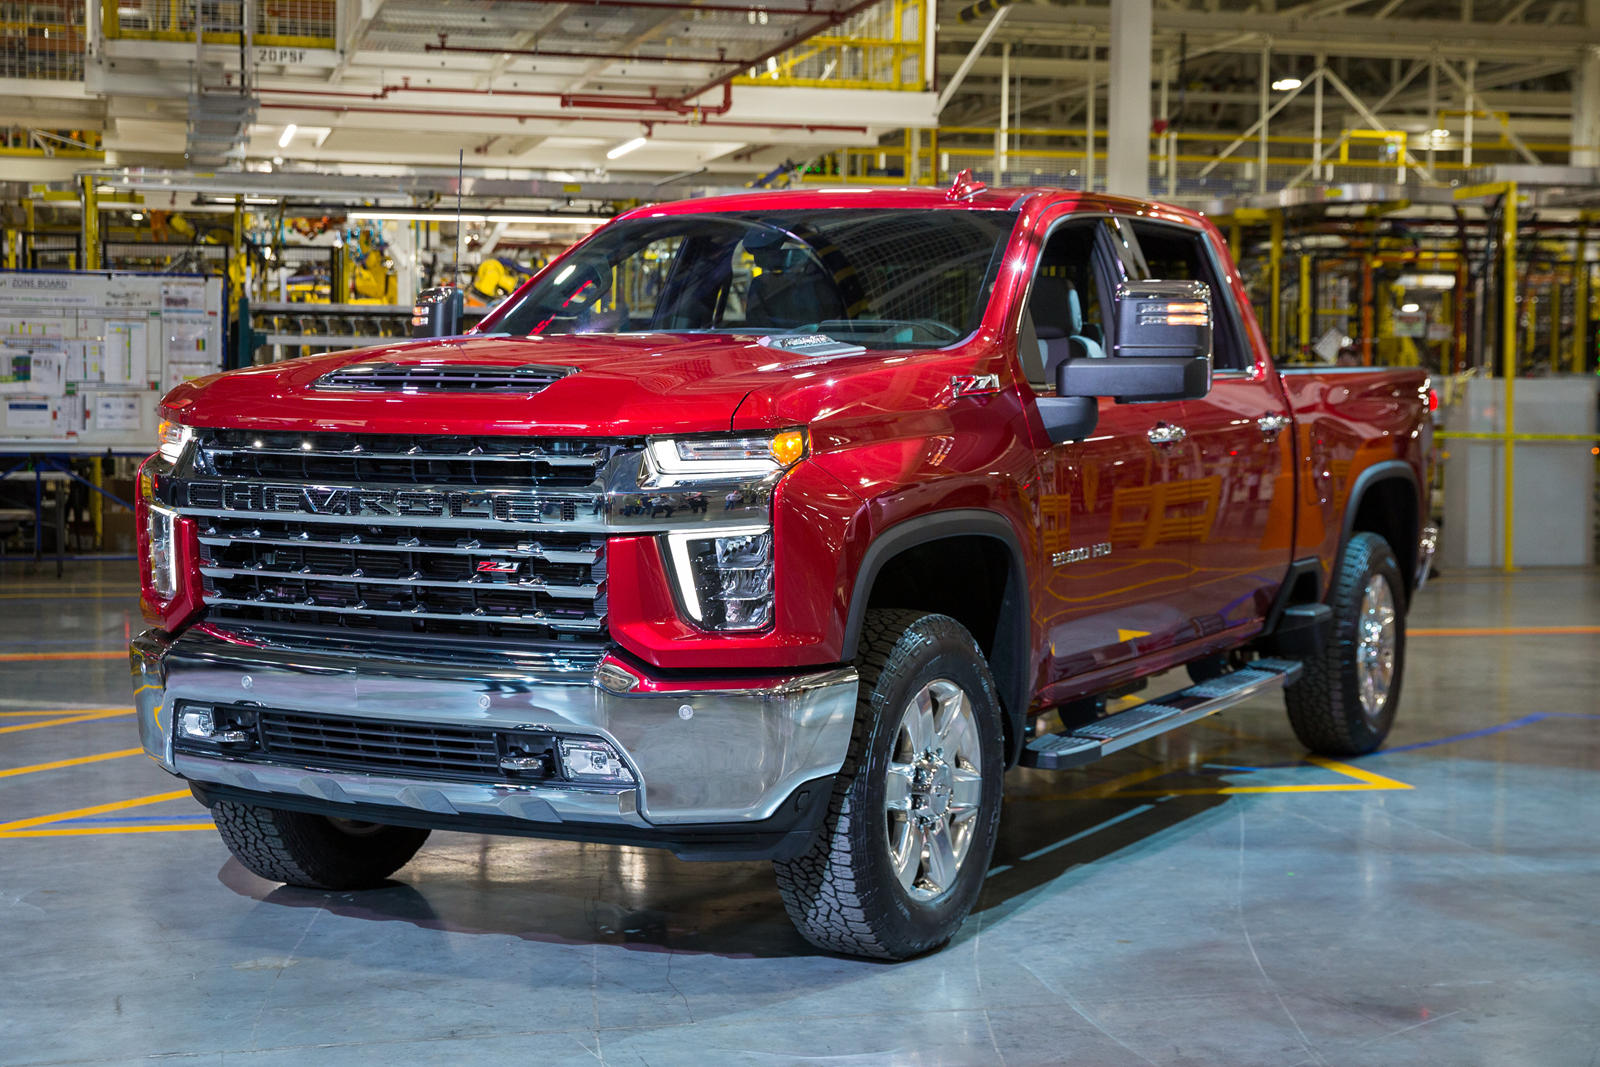 57 The Best 2020 Chevy Silverado Images